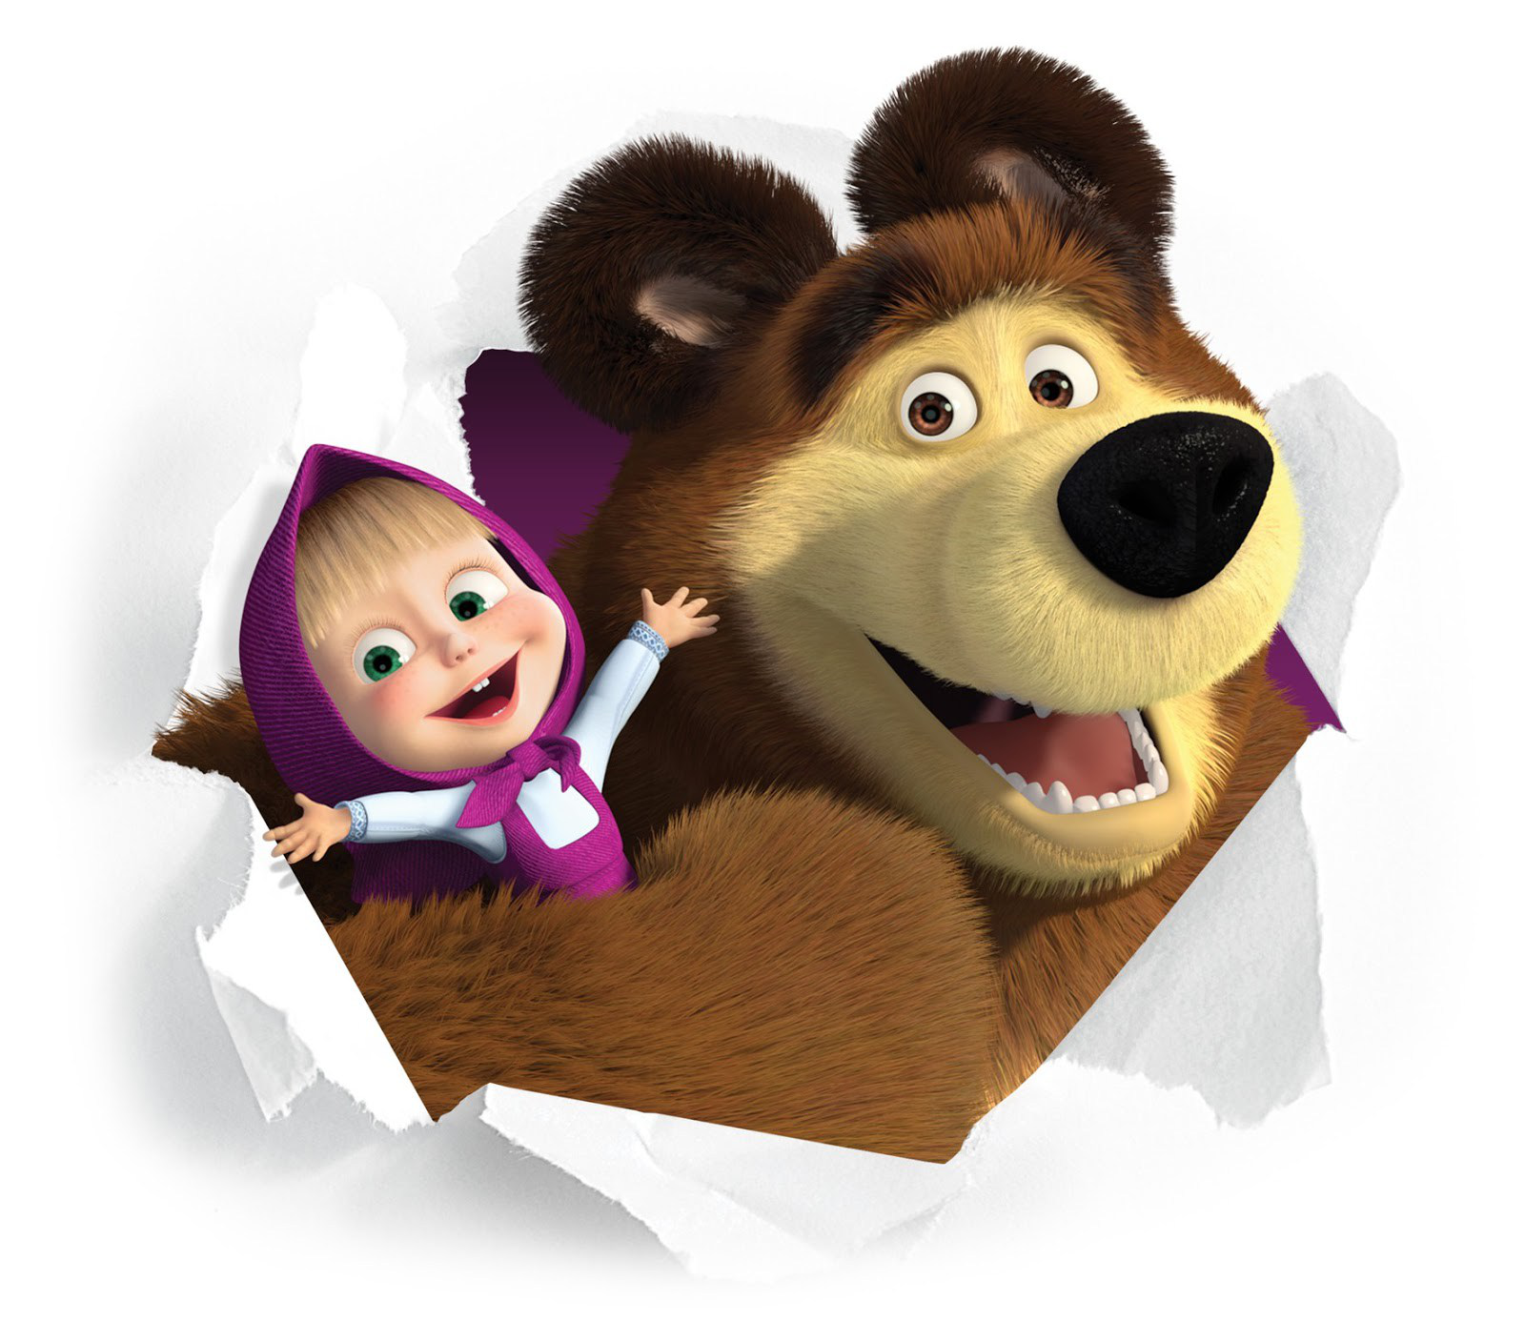 Masha and the bear free images png #47258.